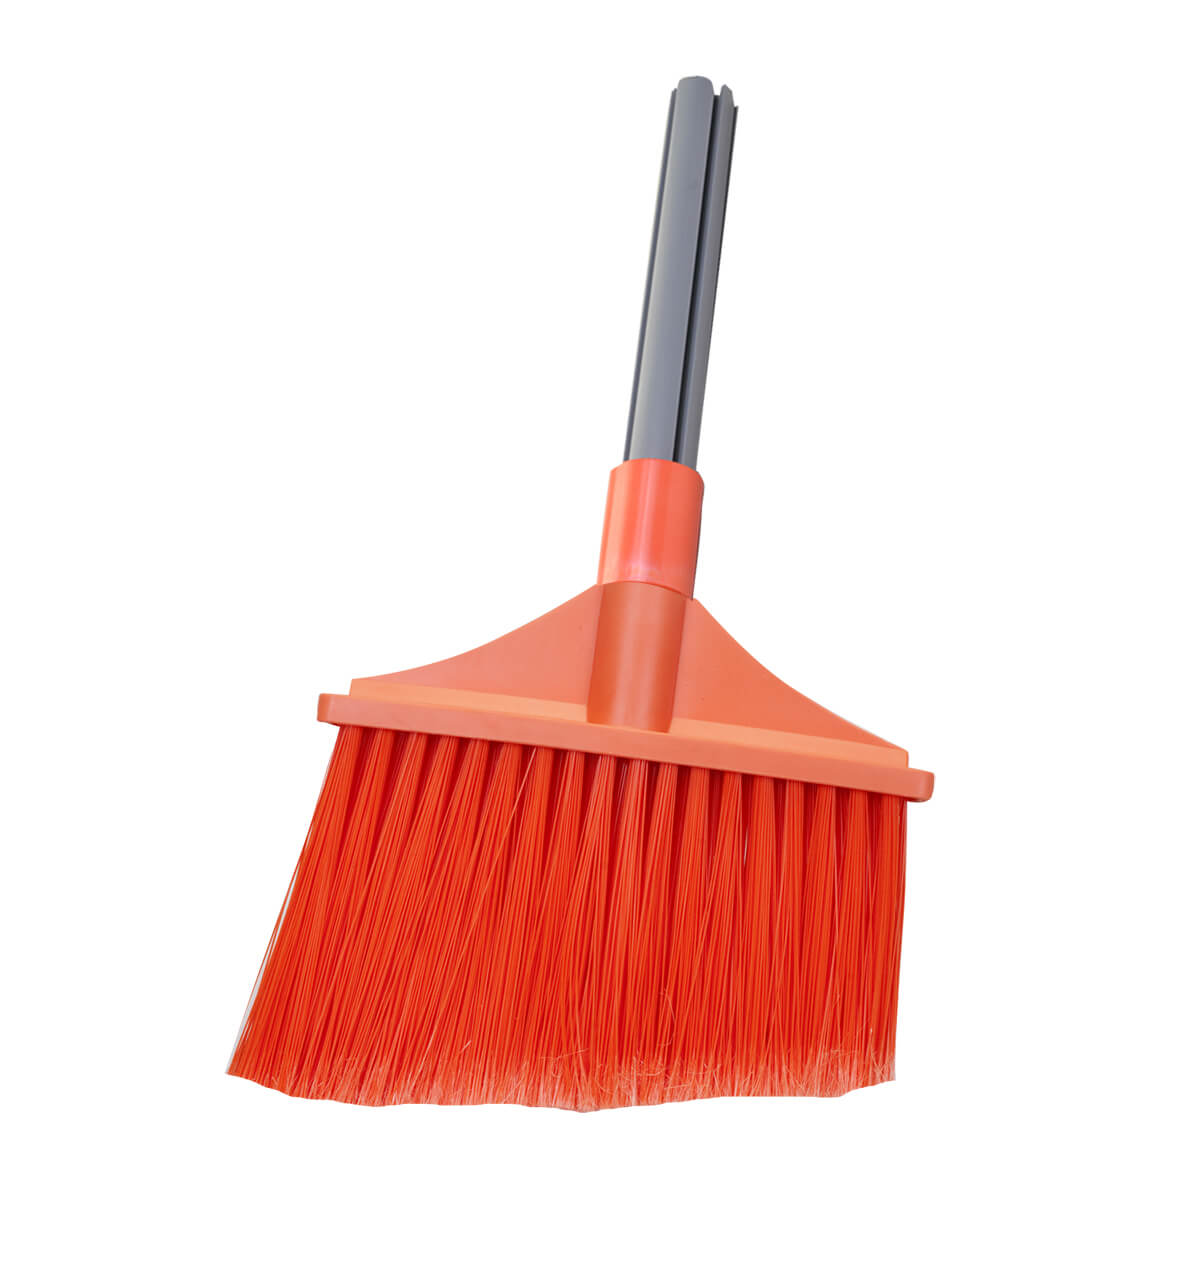 Shank-free Easy Sweep Broom